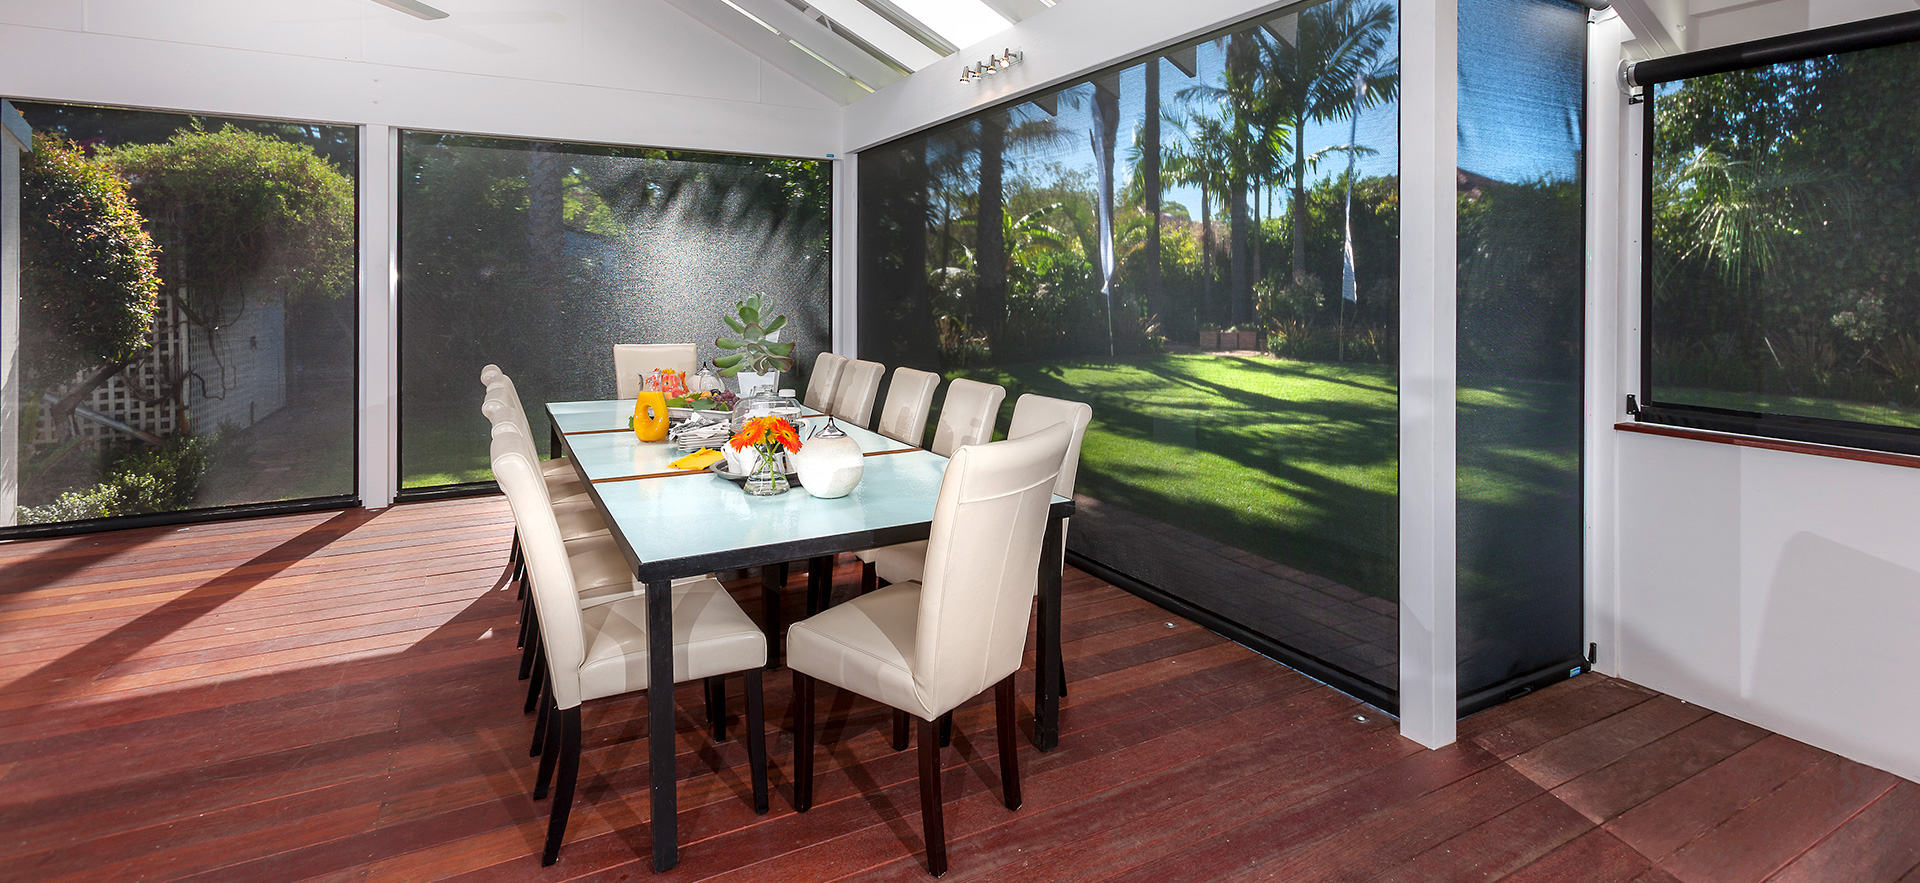 patio blinds perth - outdoor blinds perth